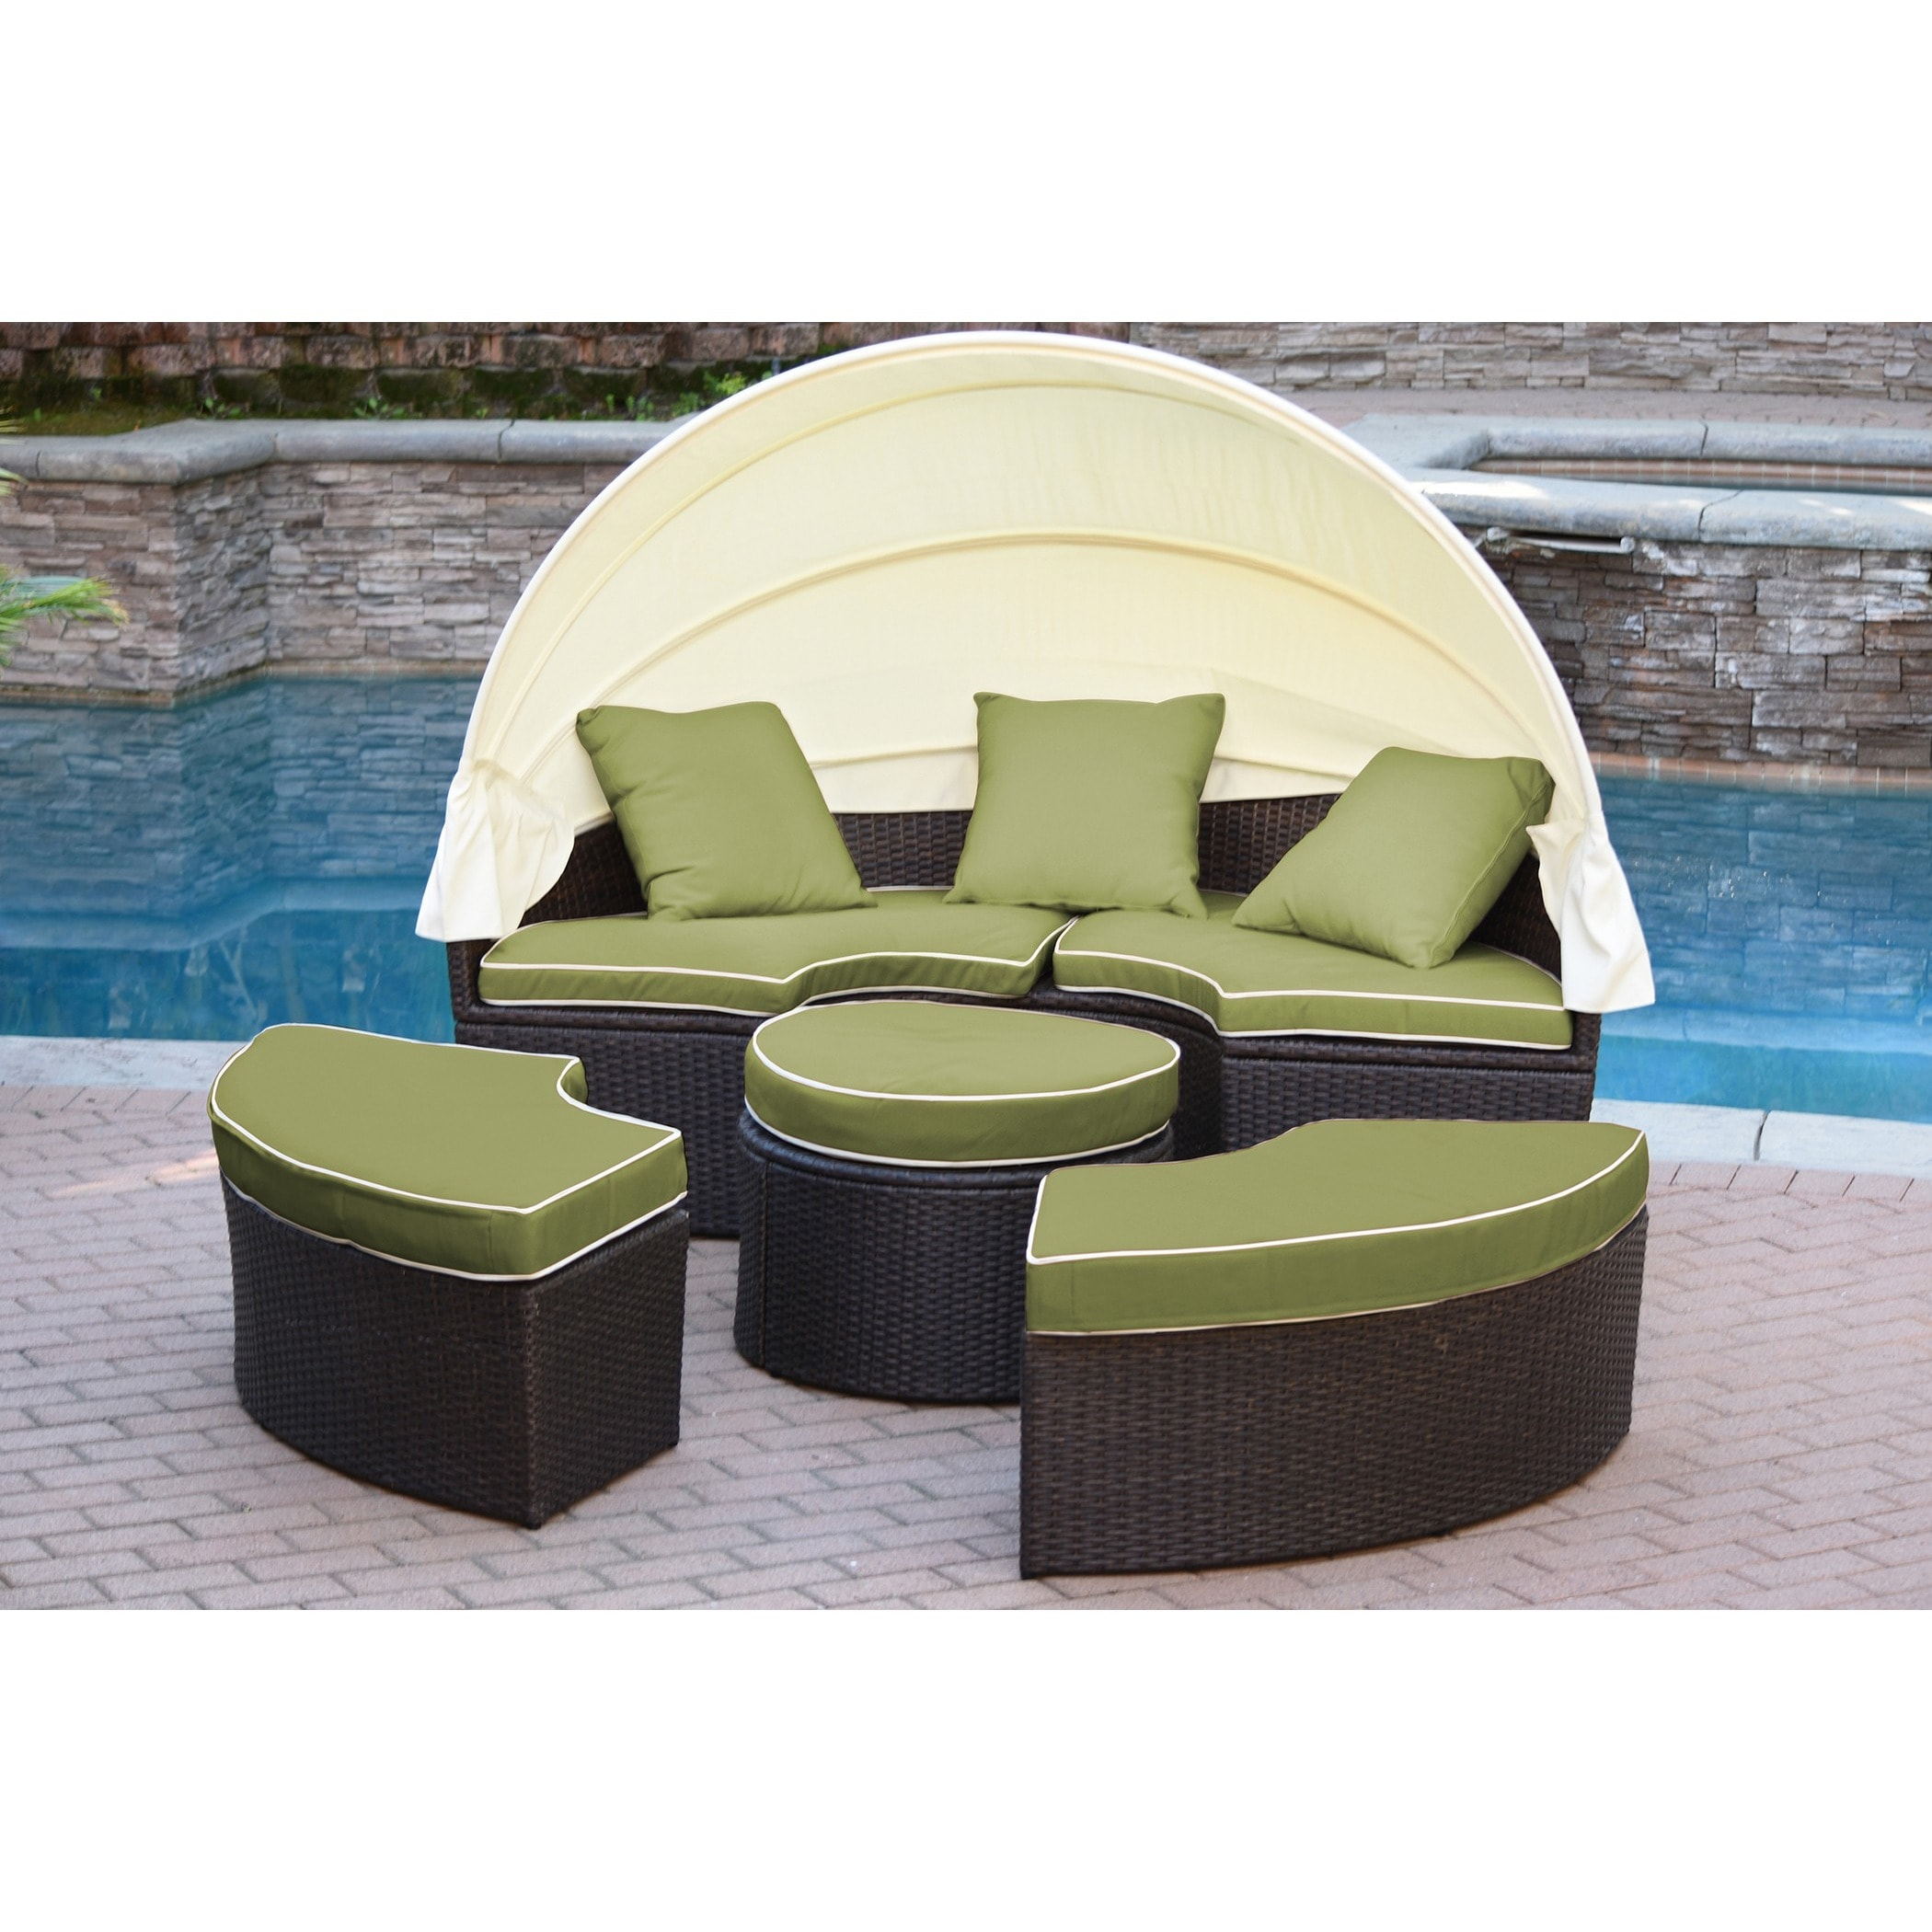 Jeco Resin Wicker All Weather 4 Piece Sectional Daybed With Cushions On Free Shipping Today 11936613